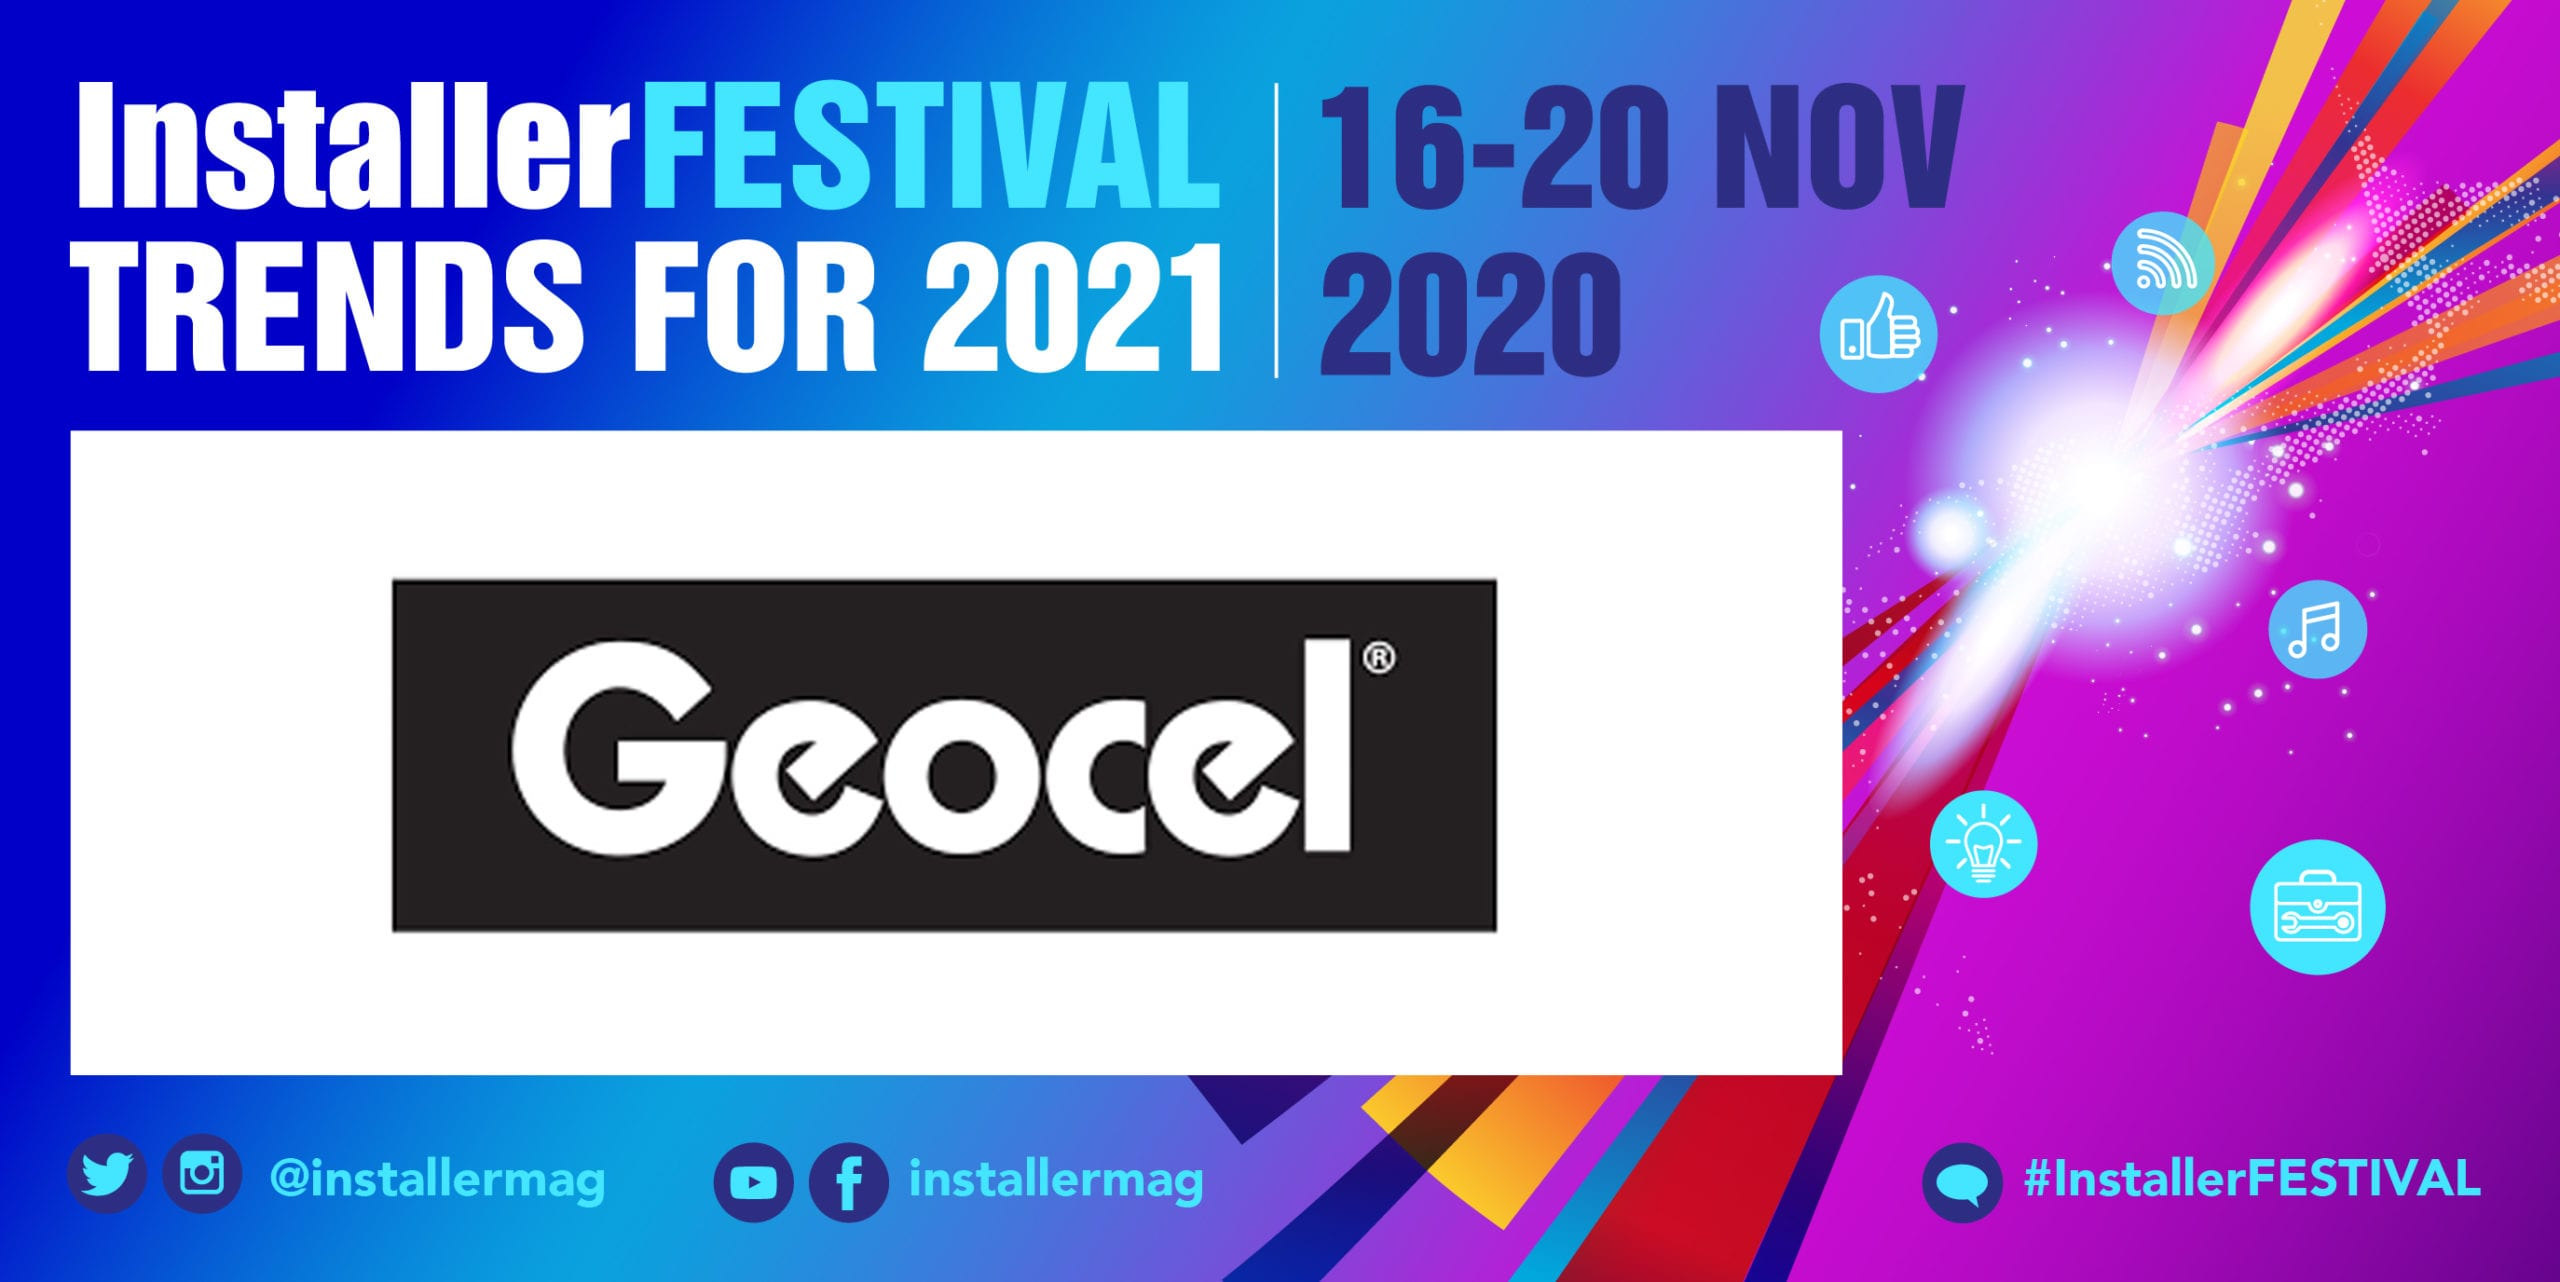 Popular - Geocel explains how you can make sustainable choices at InstallerFESTIVAL